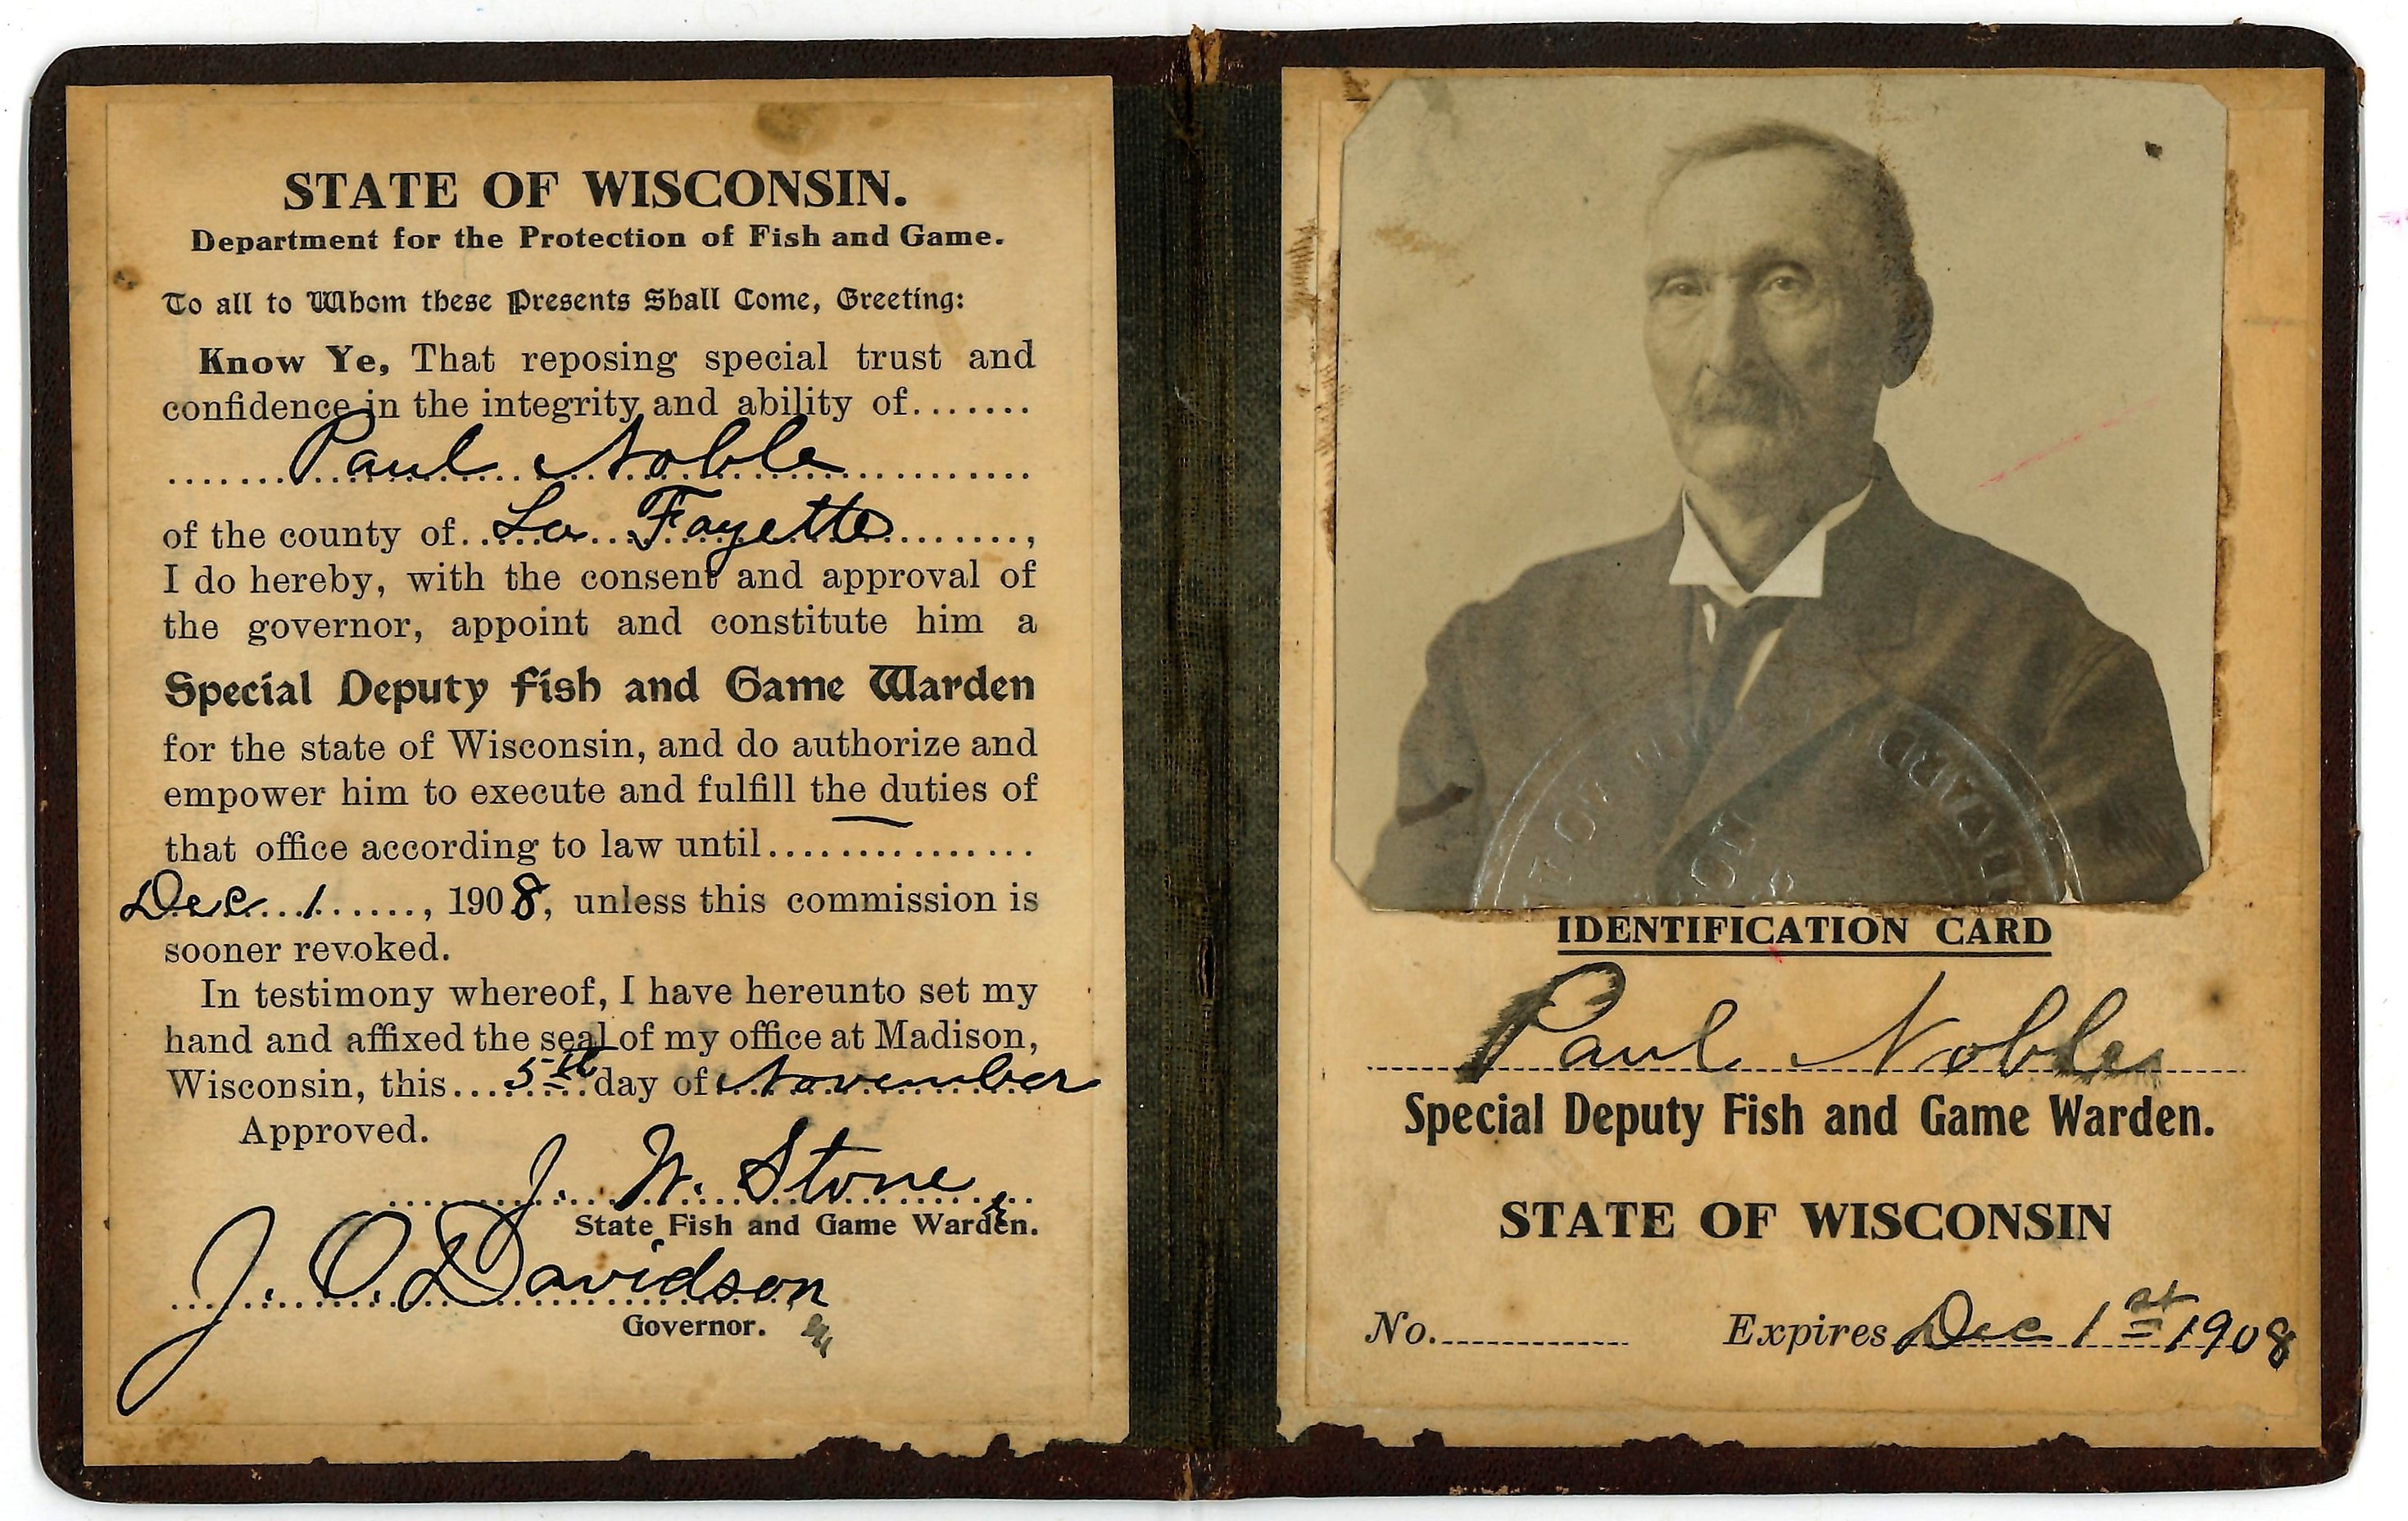 The original credentials of Kings' grandfather of varying 'greats'. Noble served as a Wisconsin Special Deputy Fish and Game Warden in the early 1900s.